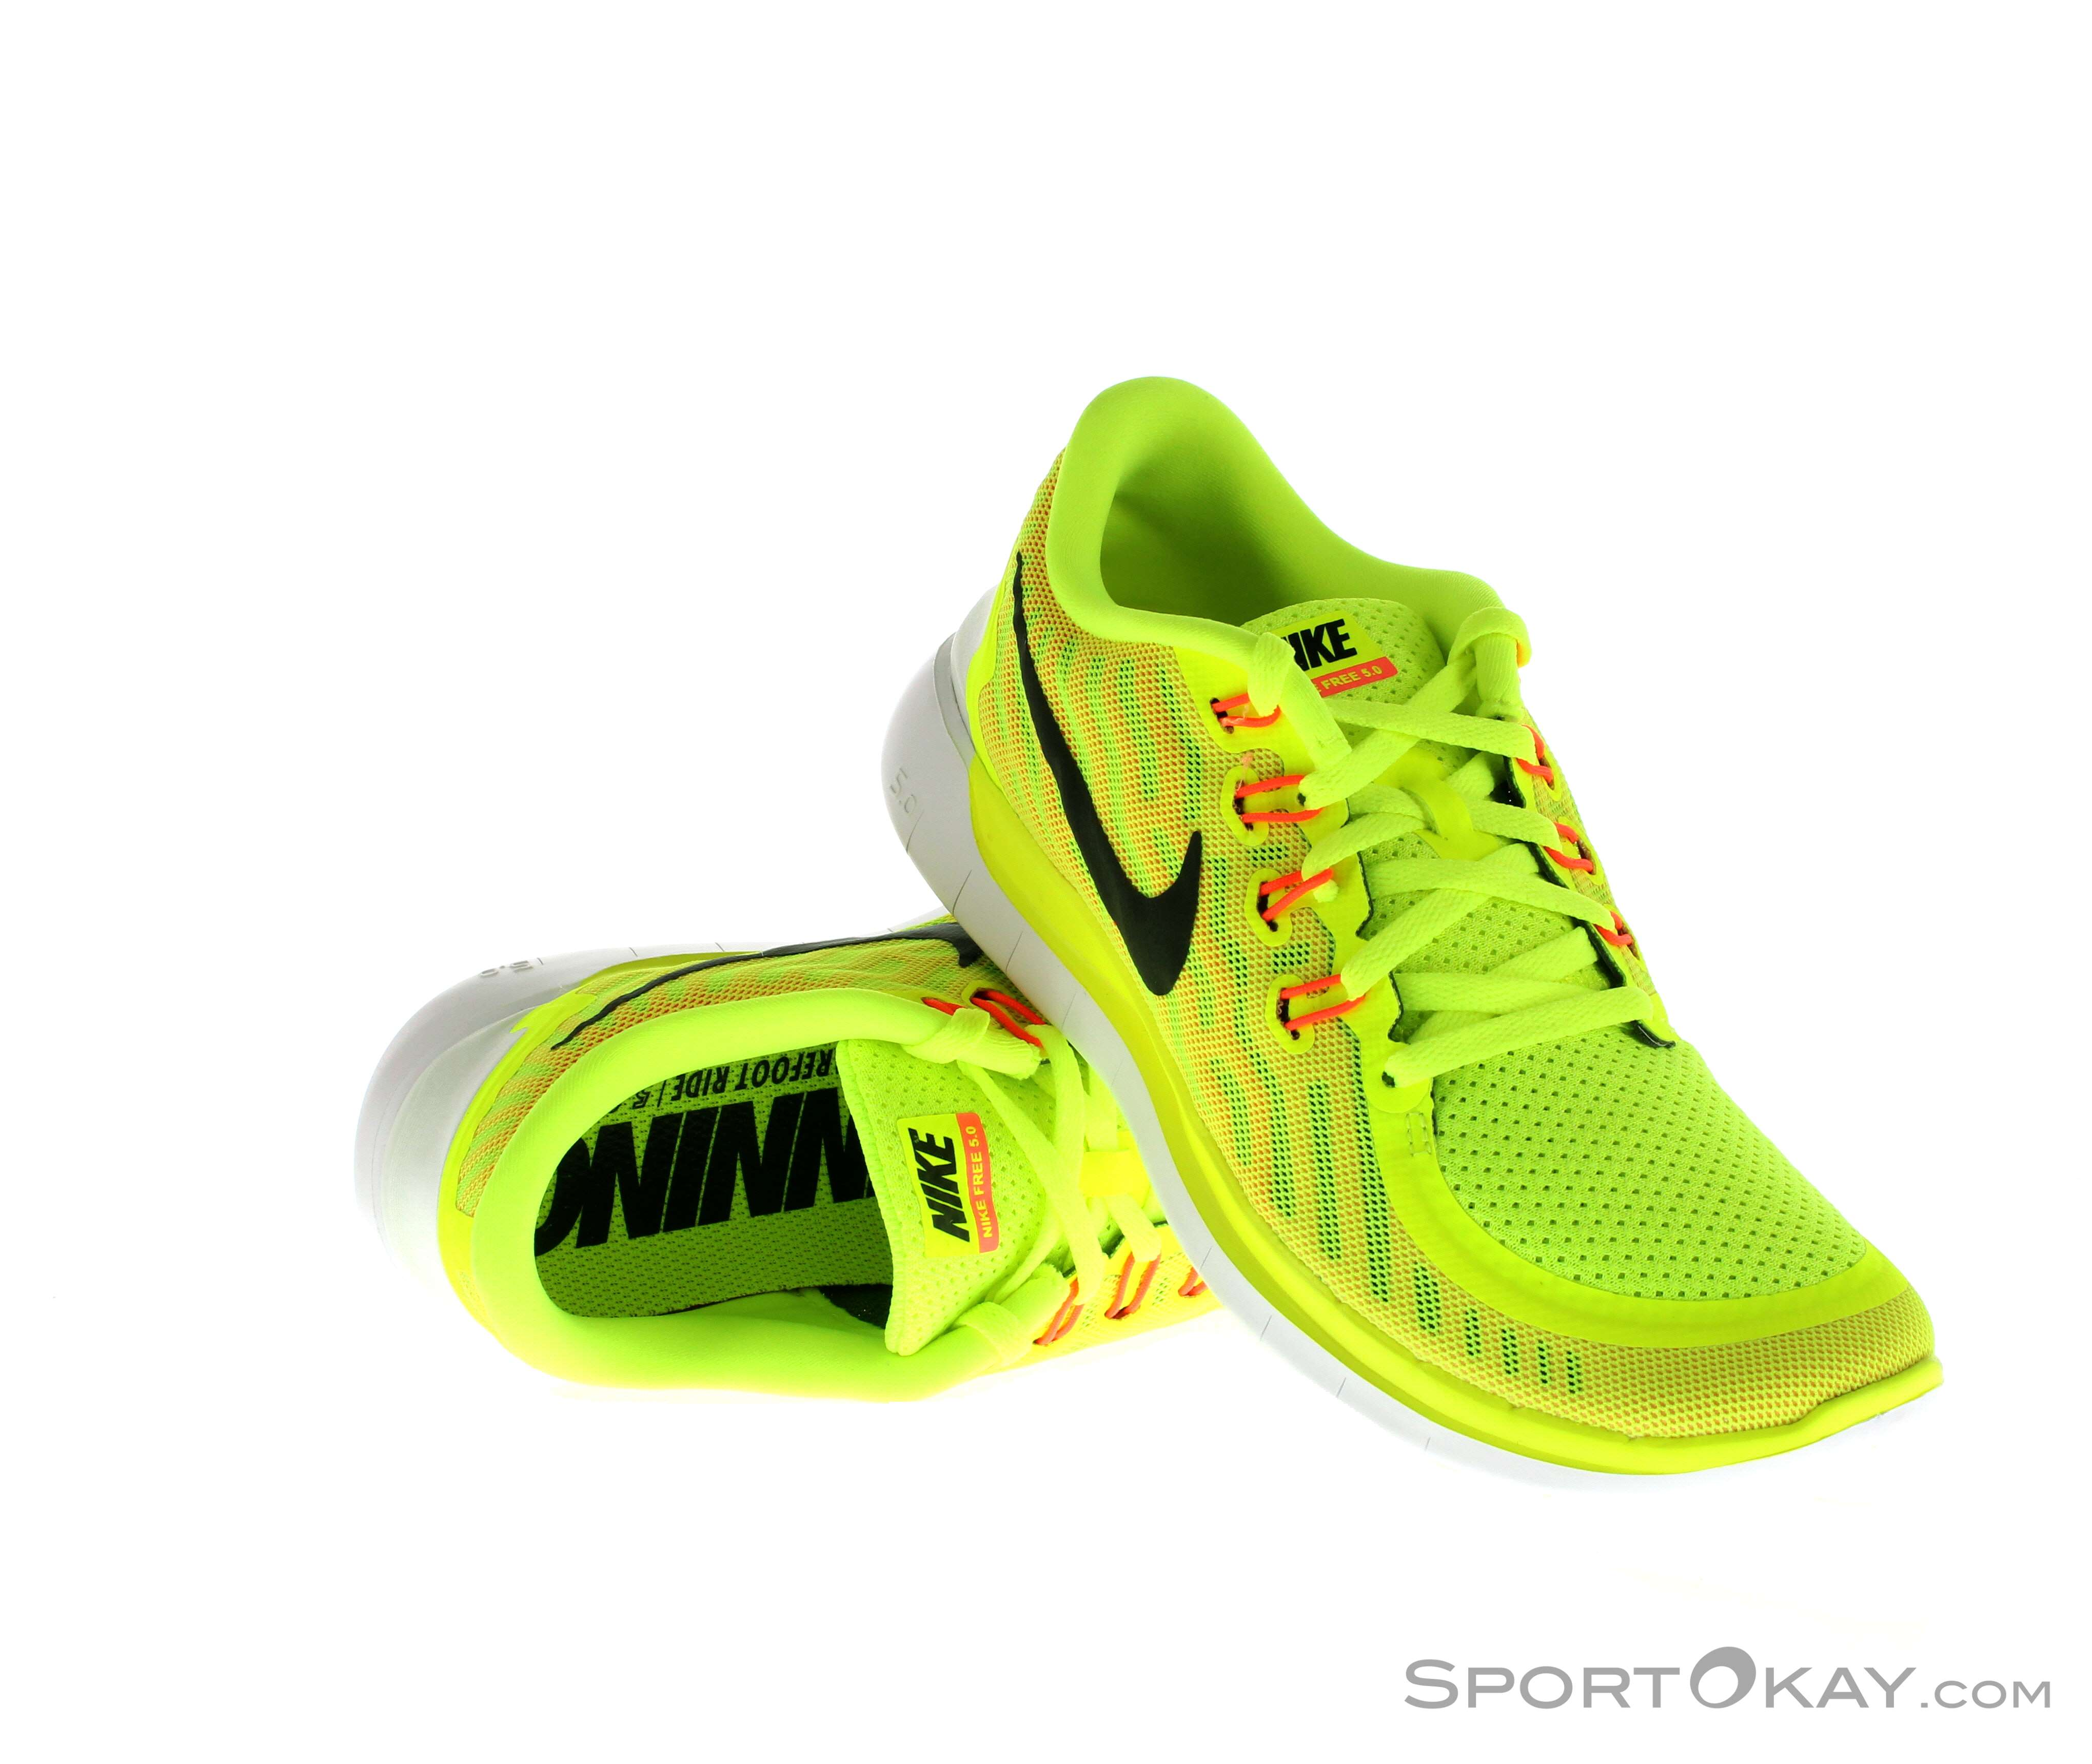 fca448ea9161 Nike Free 5.0 Womens Running Shoes - All-Round Running Shoes ...